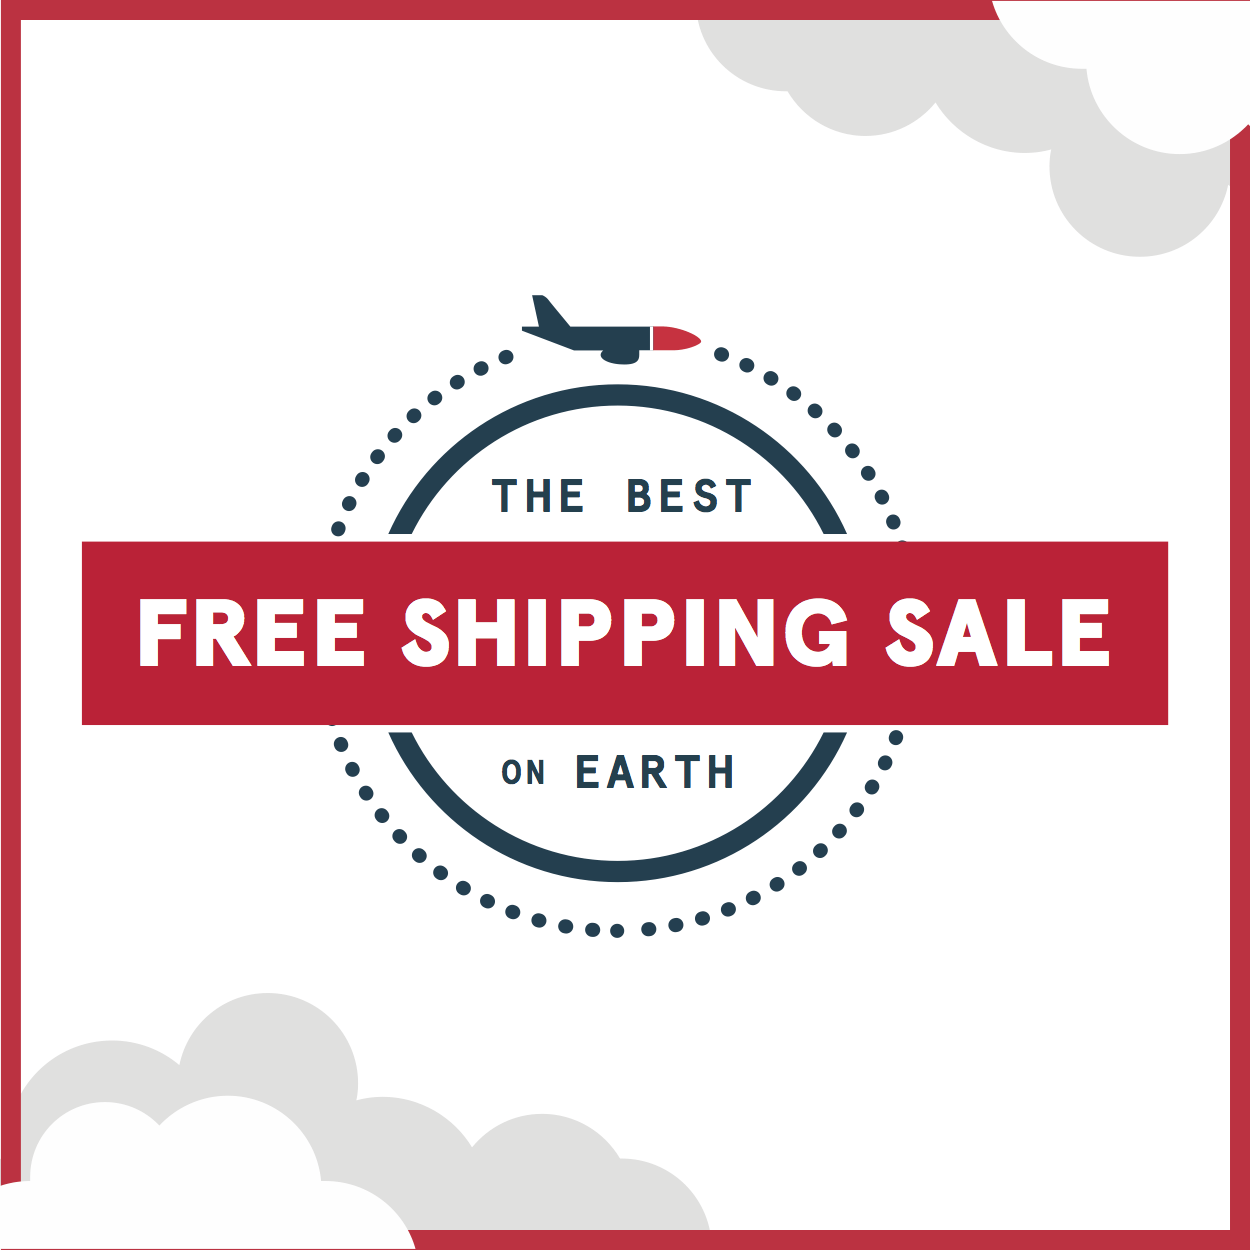 Norwegian Air: The Best Free Shipping Sale on Earth